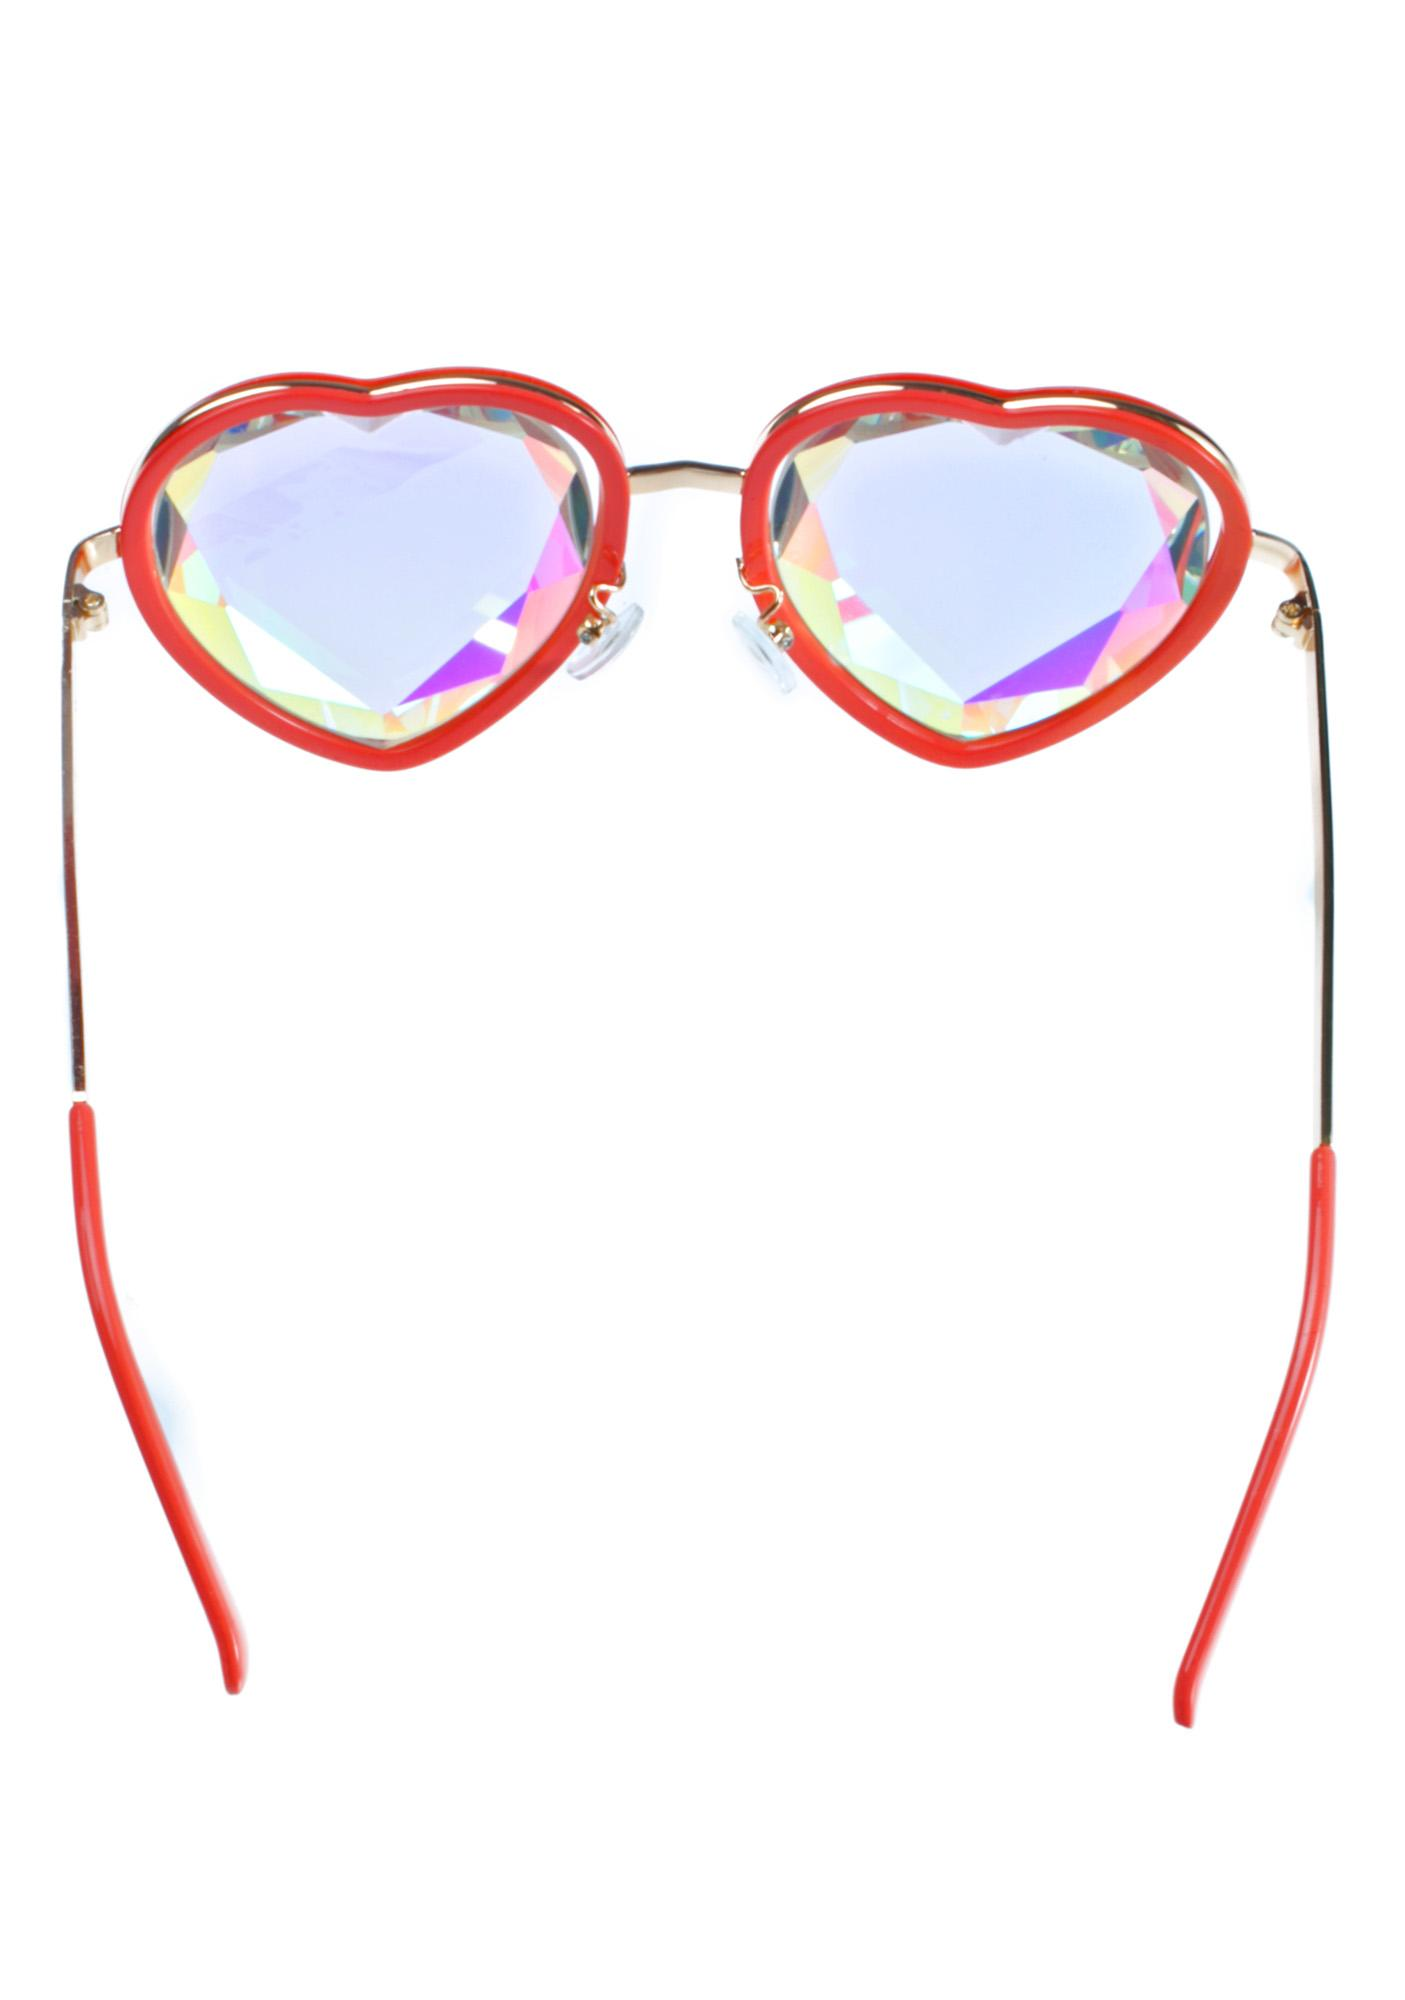 H0les Eyewear BB Heart Sunglasses